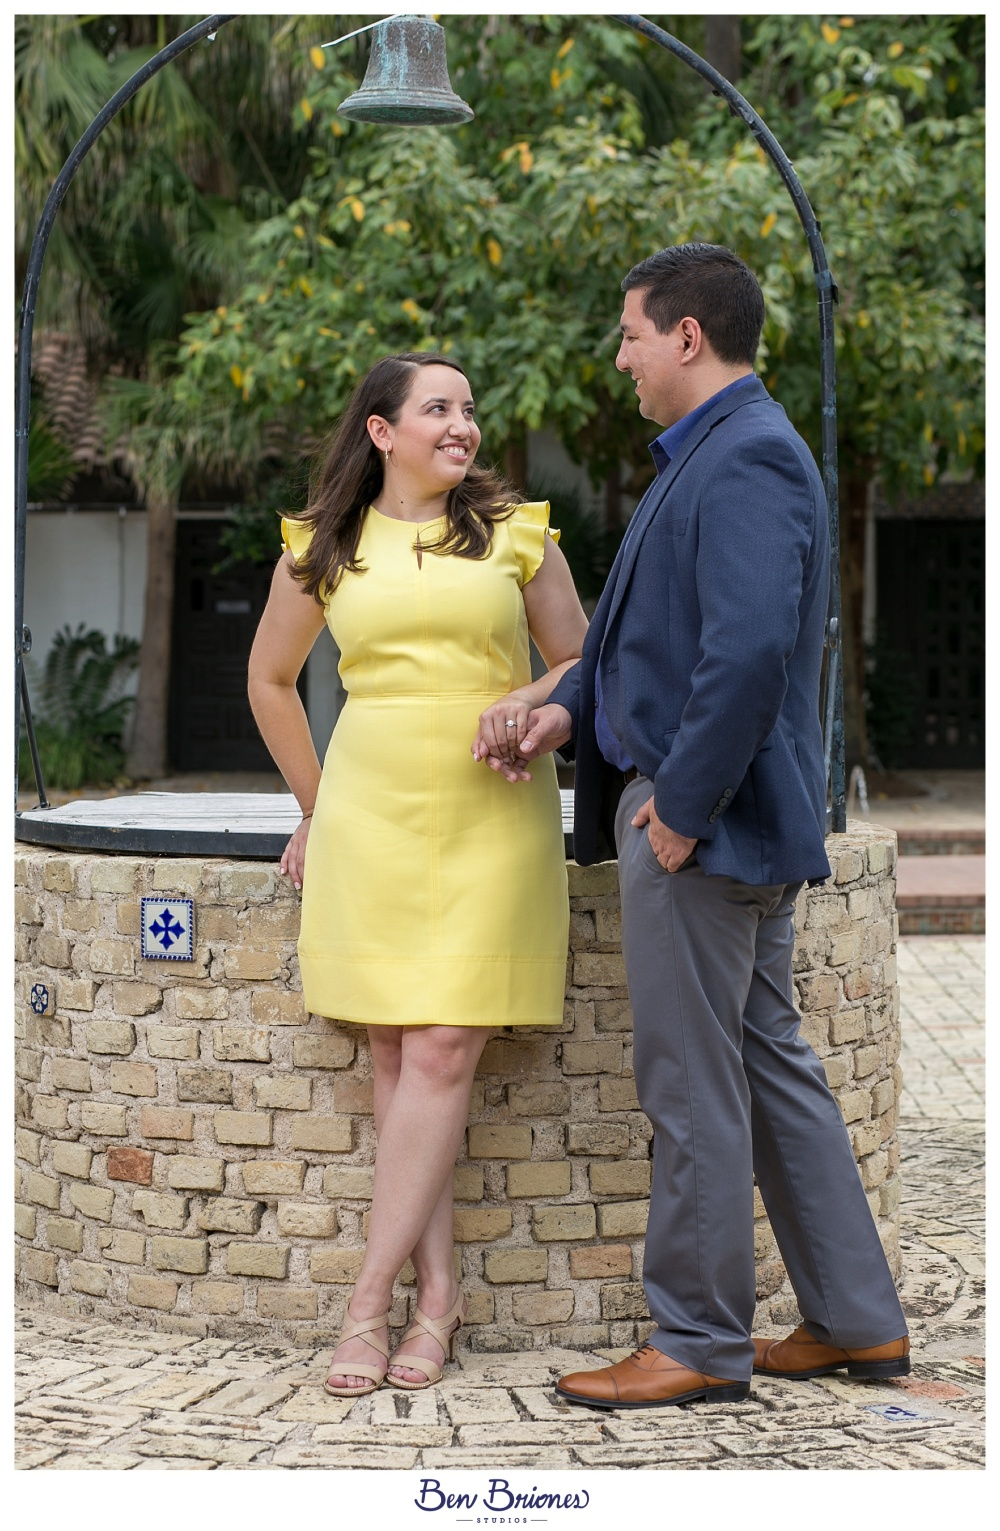 04.23.18_PRINT_Joanna and Carlos_BBS-9915_WEB